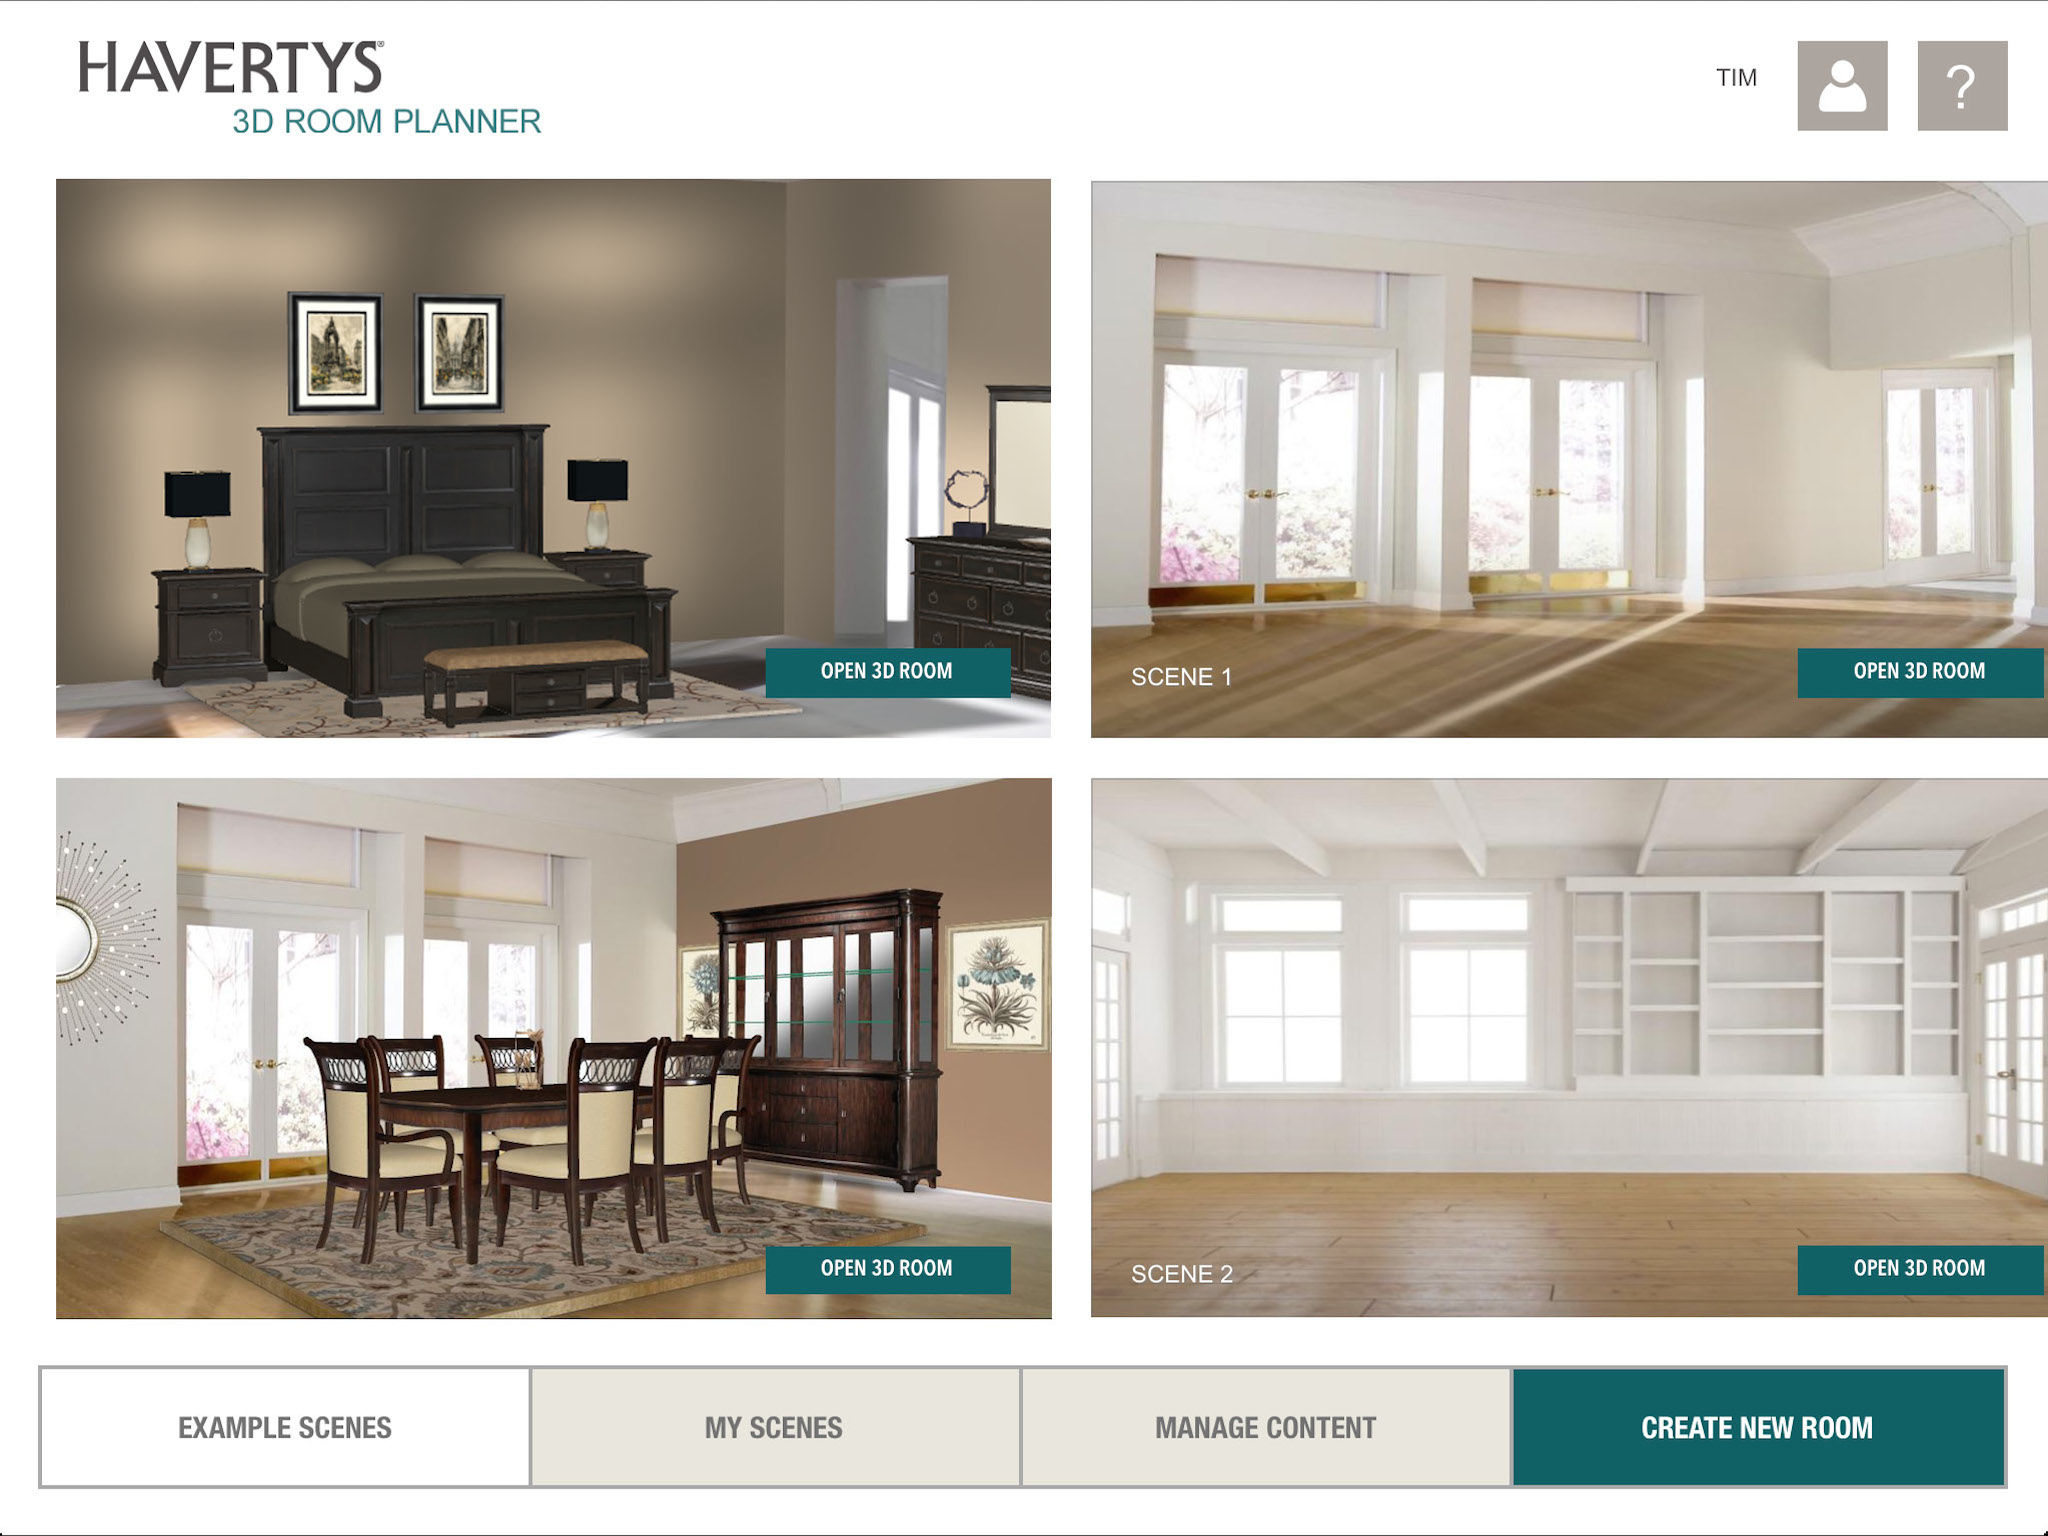 Explore Different Designs And Furniture Layouts To Share With Your Friends All From The Comfort Of Your Home App Description Havertys 3d Room Planner